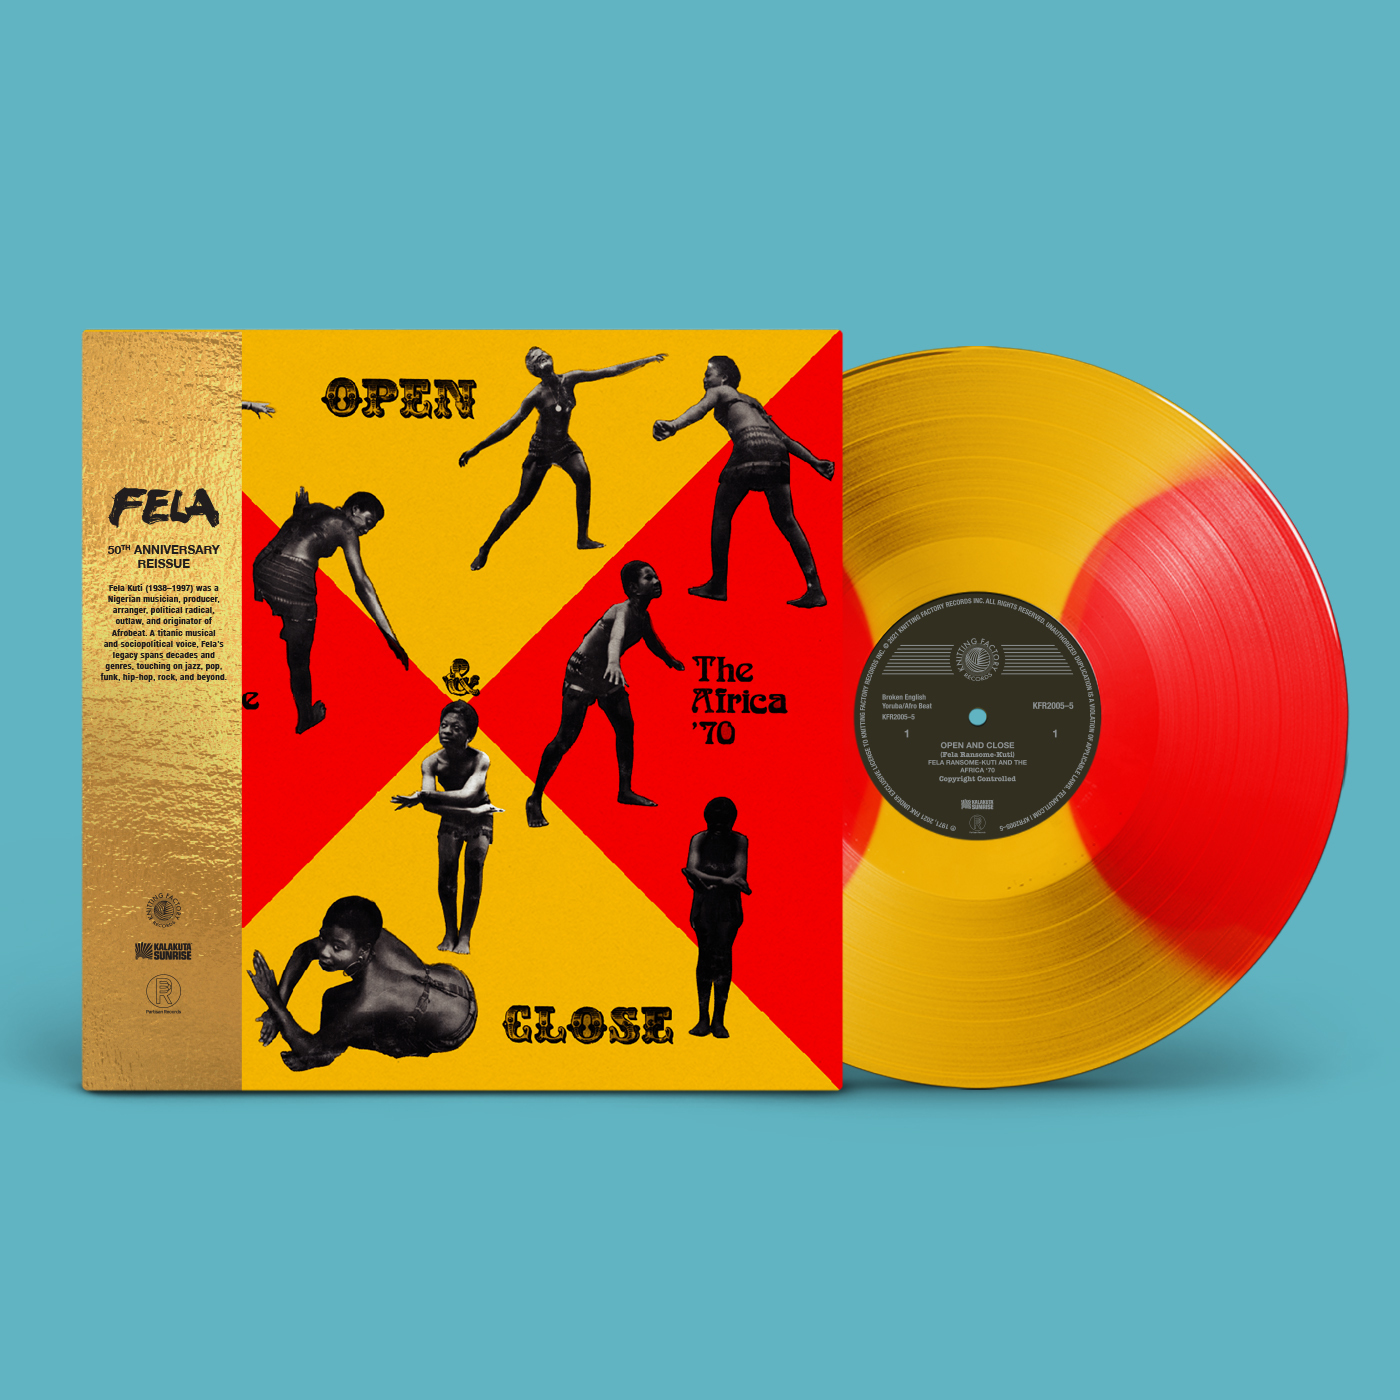 50th Anniversary of Open & Close available for Record Store Day 2021